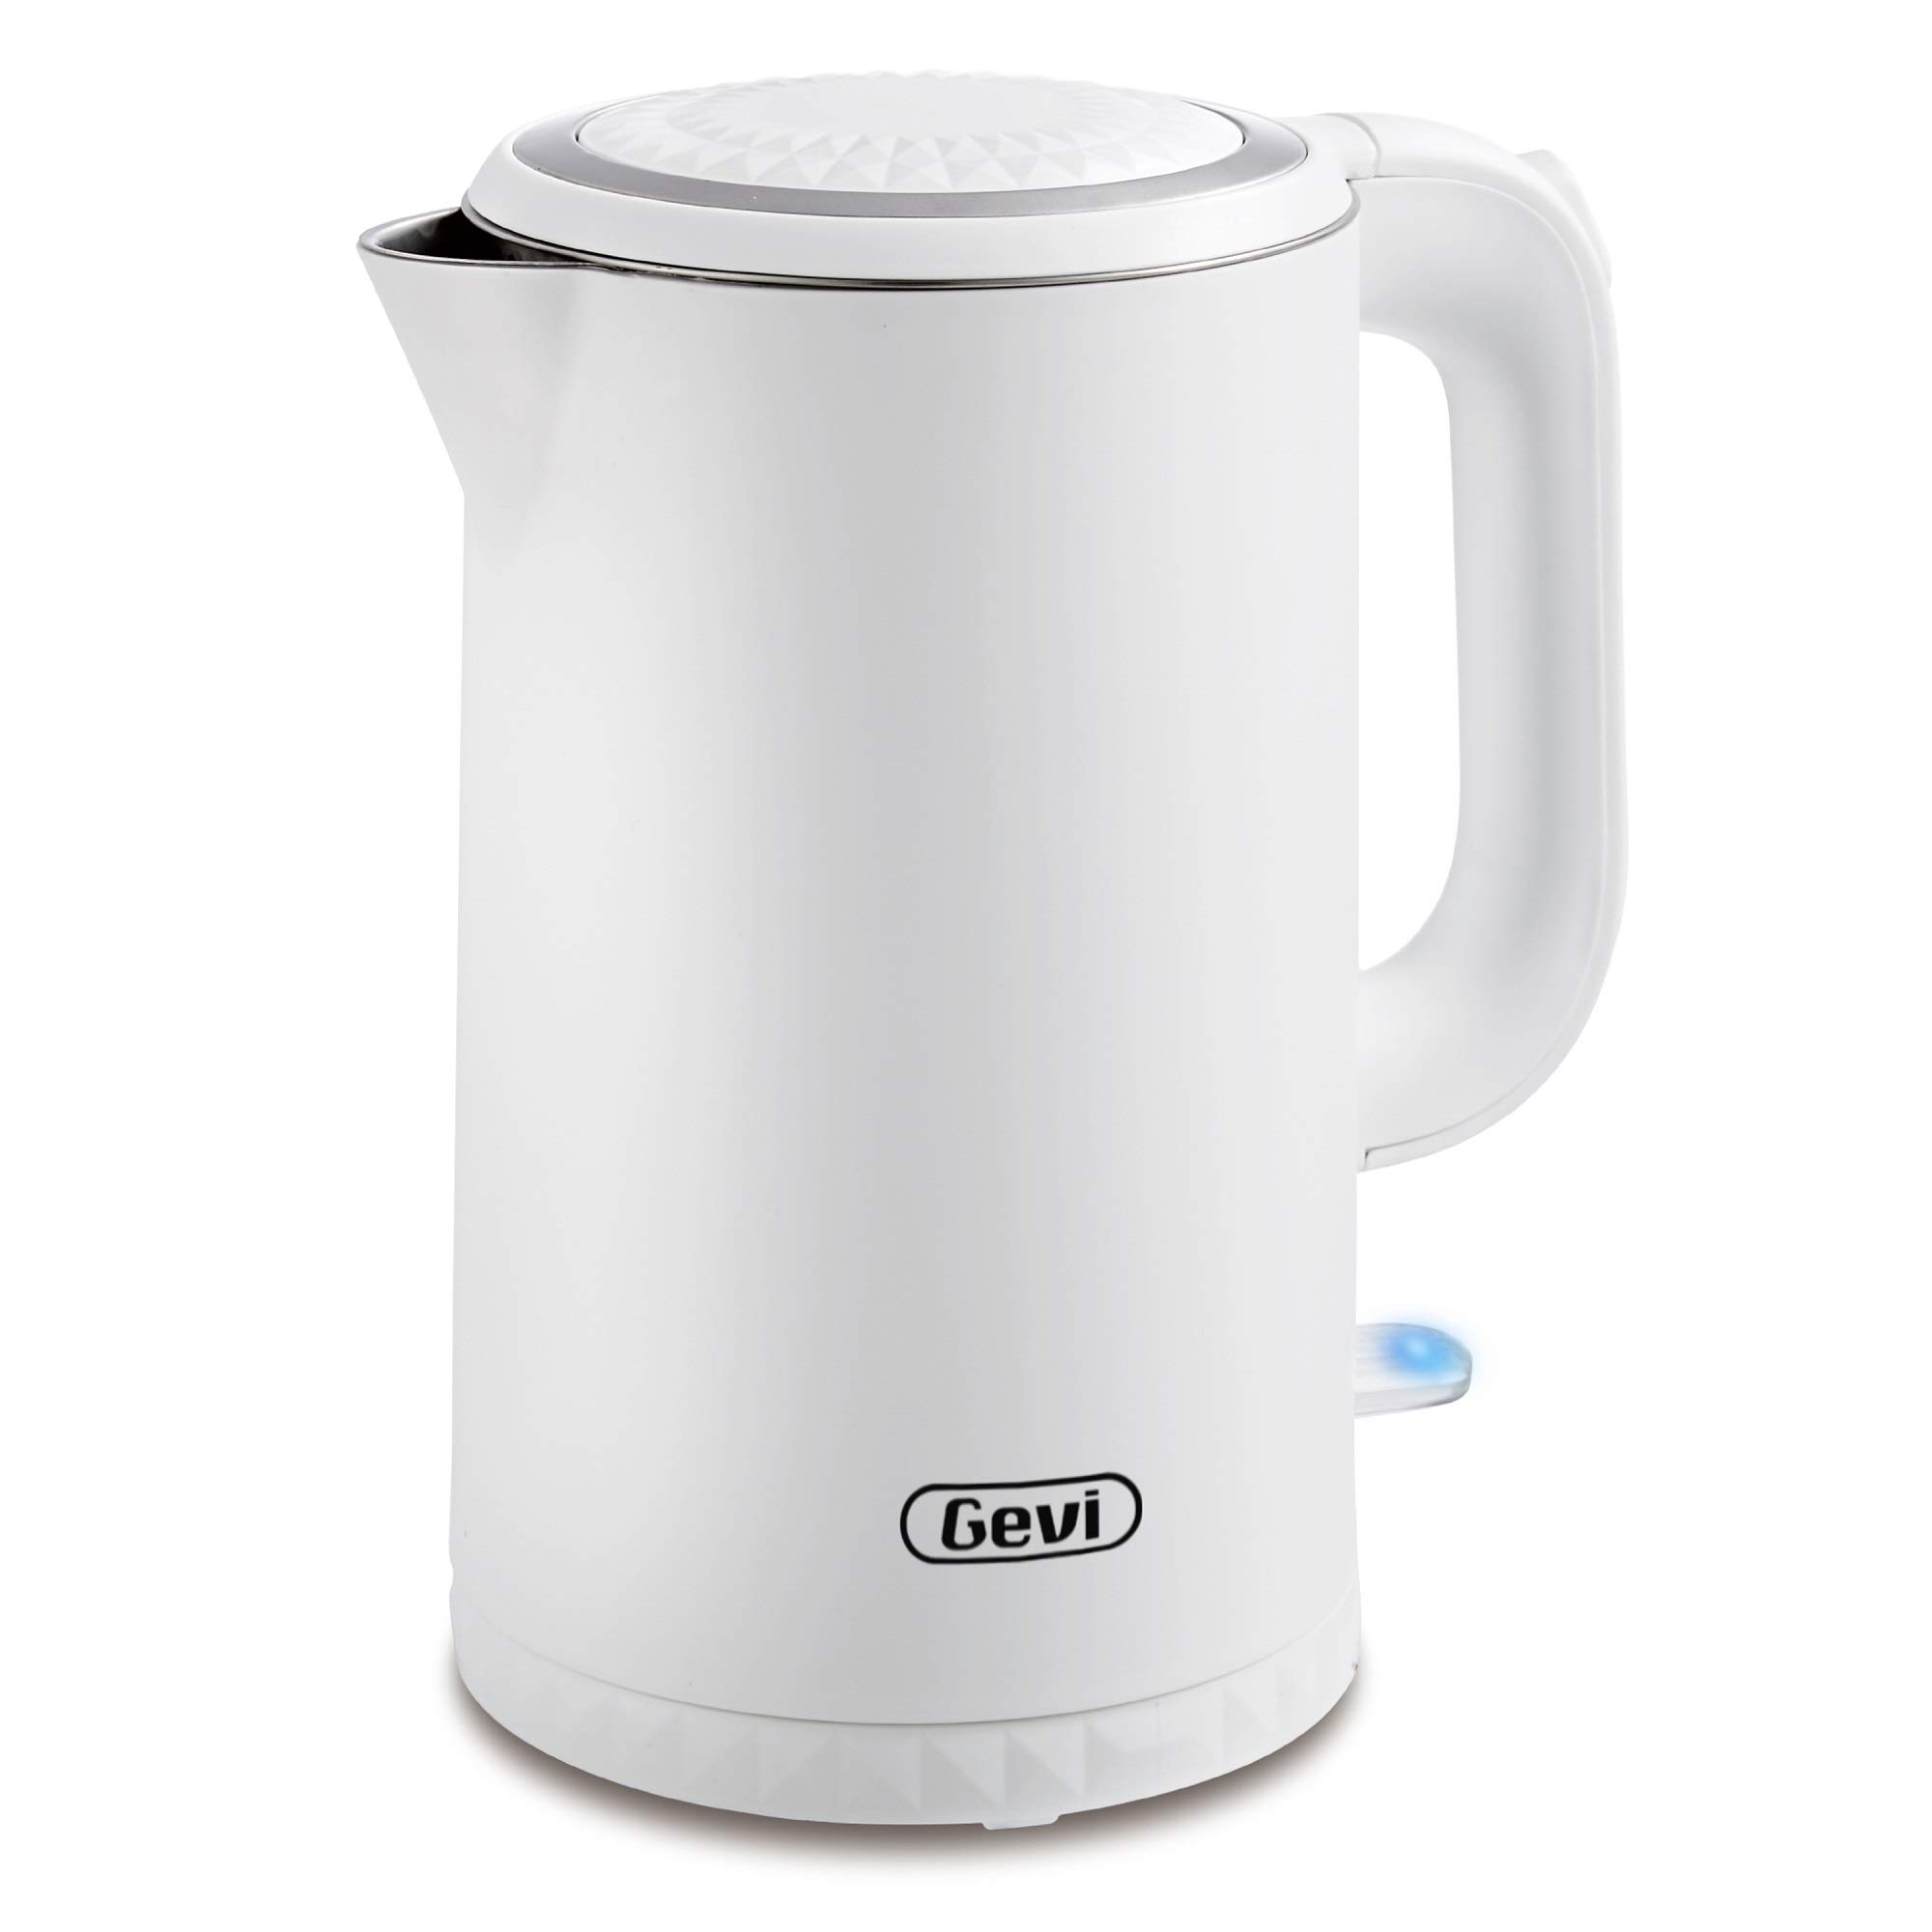 Electric Kettle, Gevi 1.7 Liter Cool Touch Double Wall Stainless Steel Cordless Tea Kettle, Hot Water Boiler with 1500W Strix Control, Metta White by GEVI (Image #1)